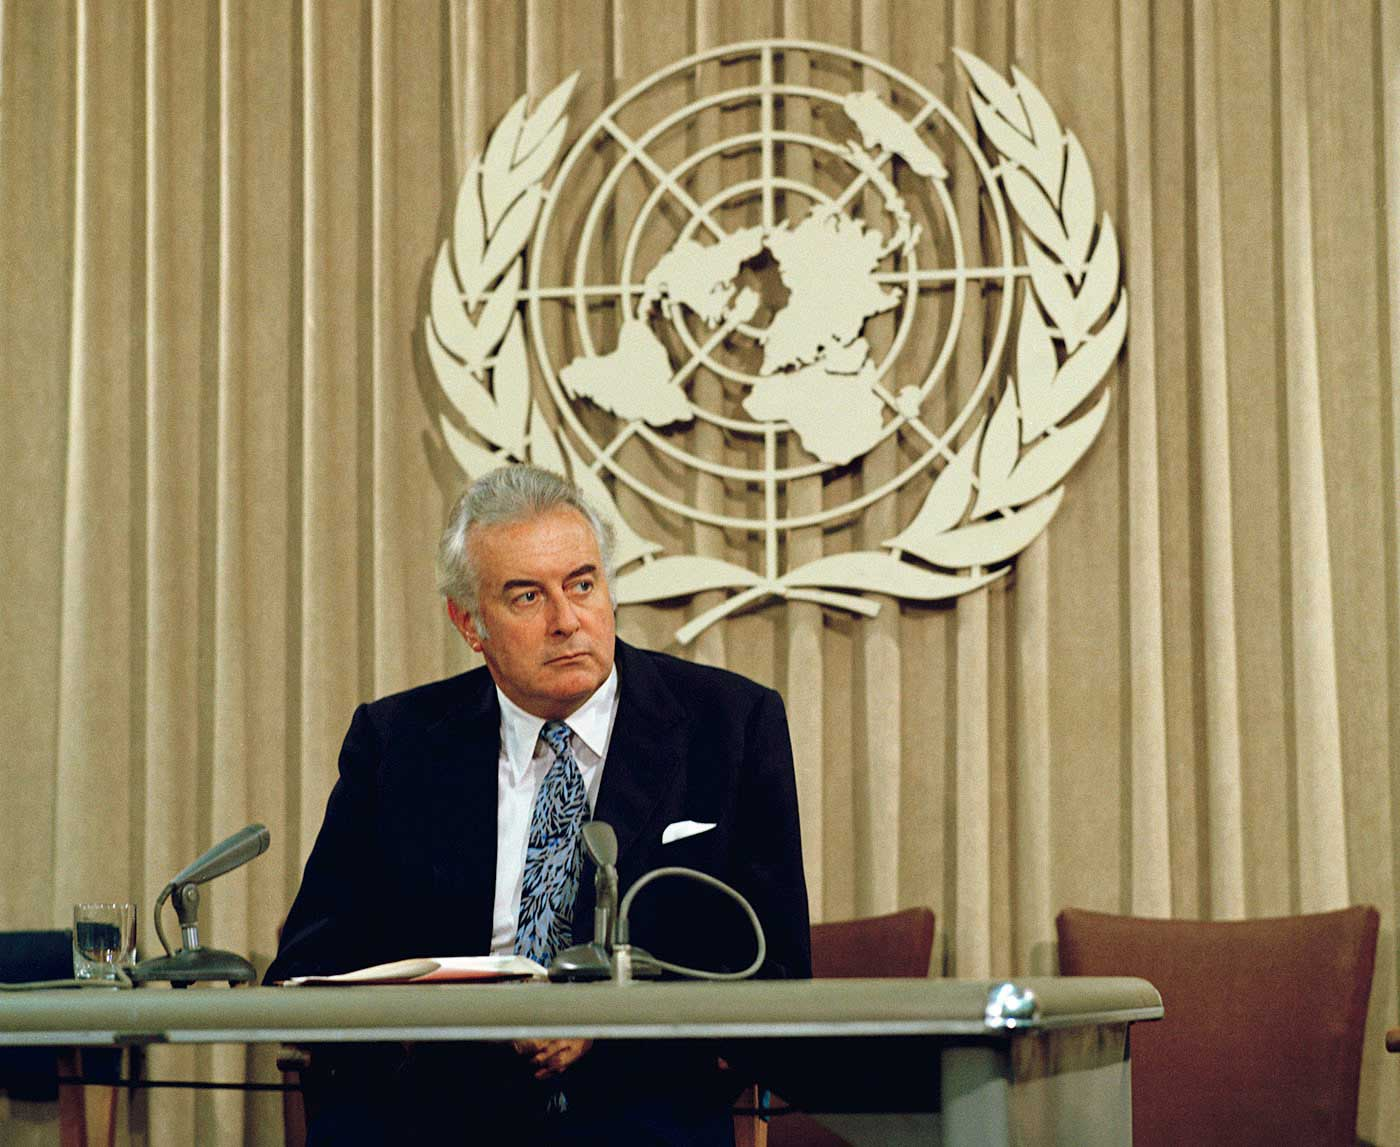 Colour photo of middle-aged man in suit sitting behind desk with UN symbol in background.